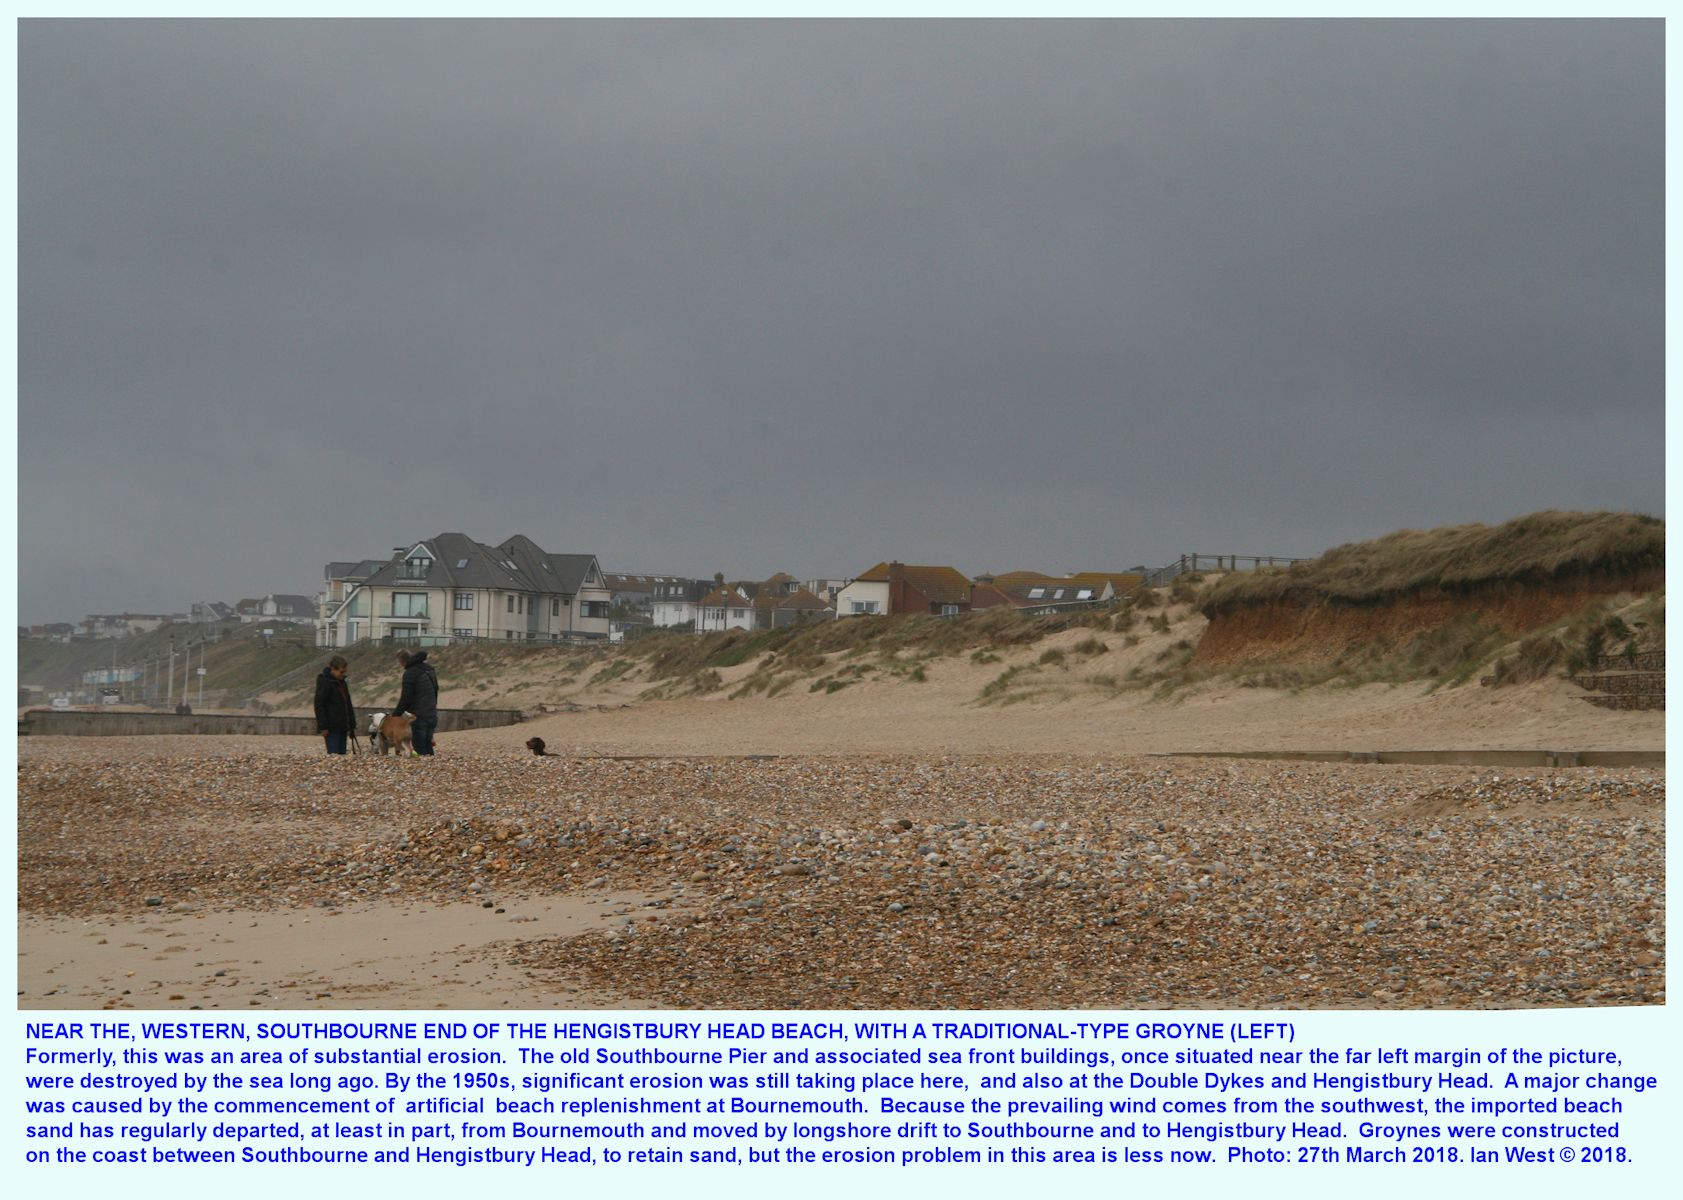 West of the three Portland Stone groynes, between Hengistbury Head and Southbourne, is a single traditional type of groyne